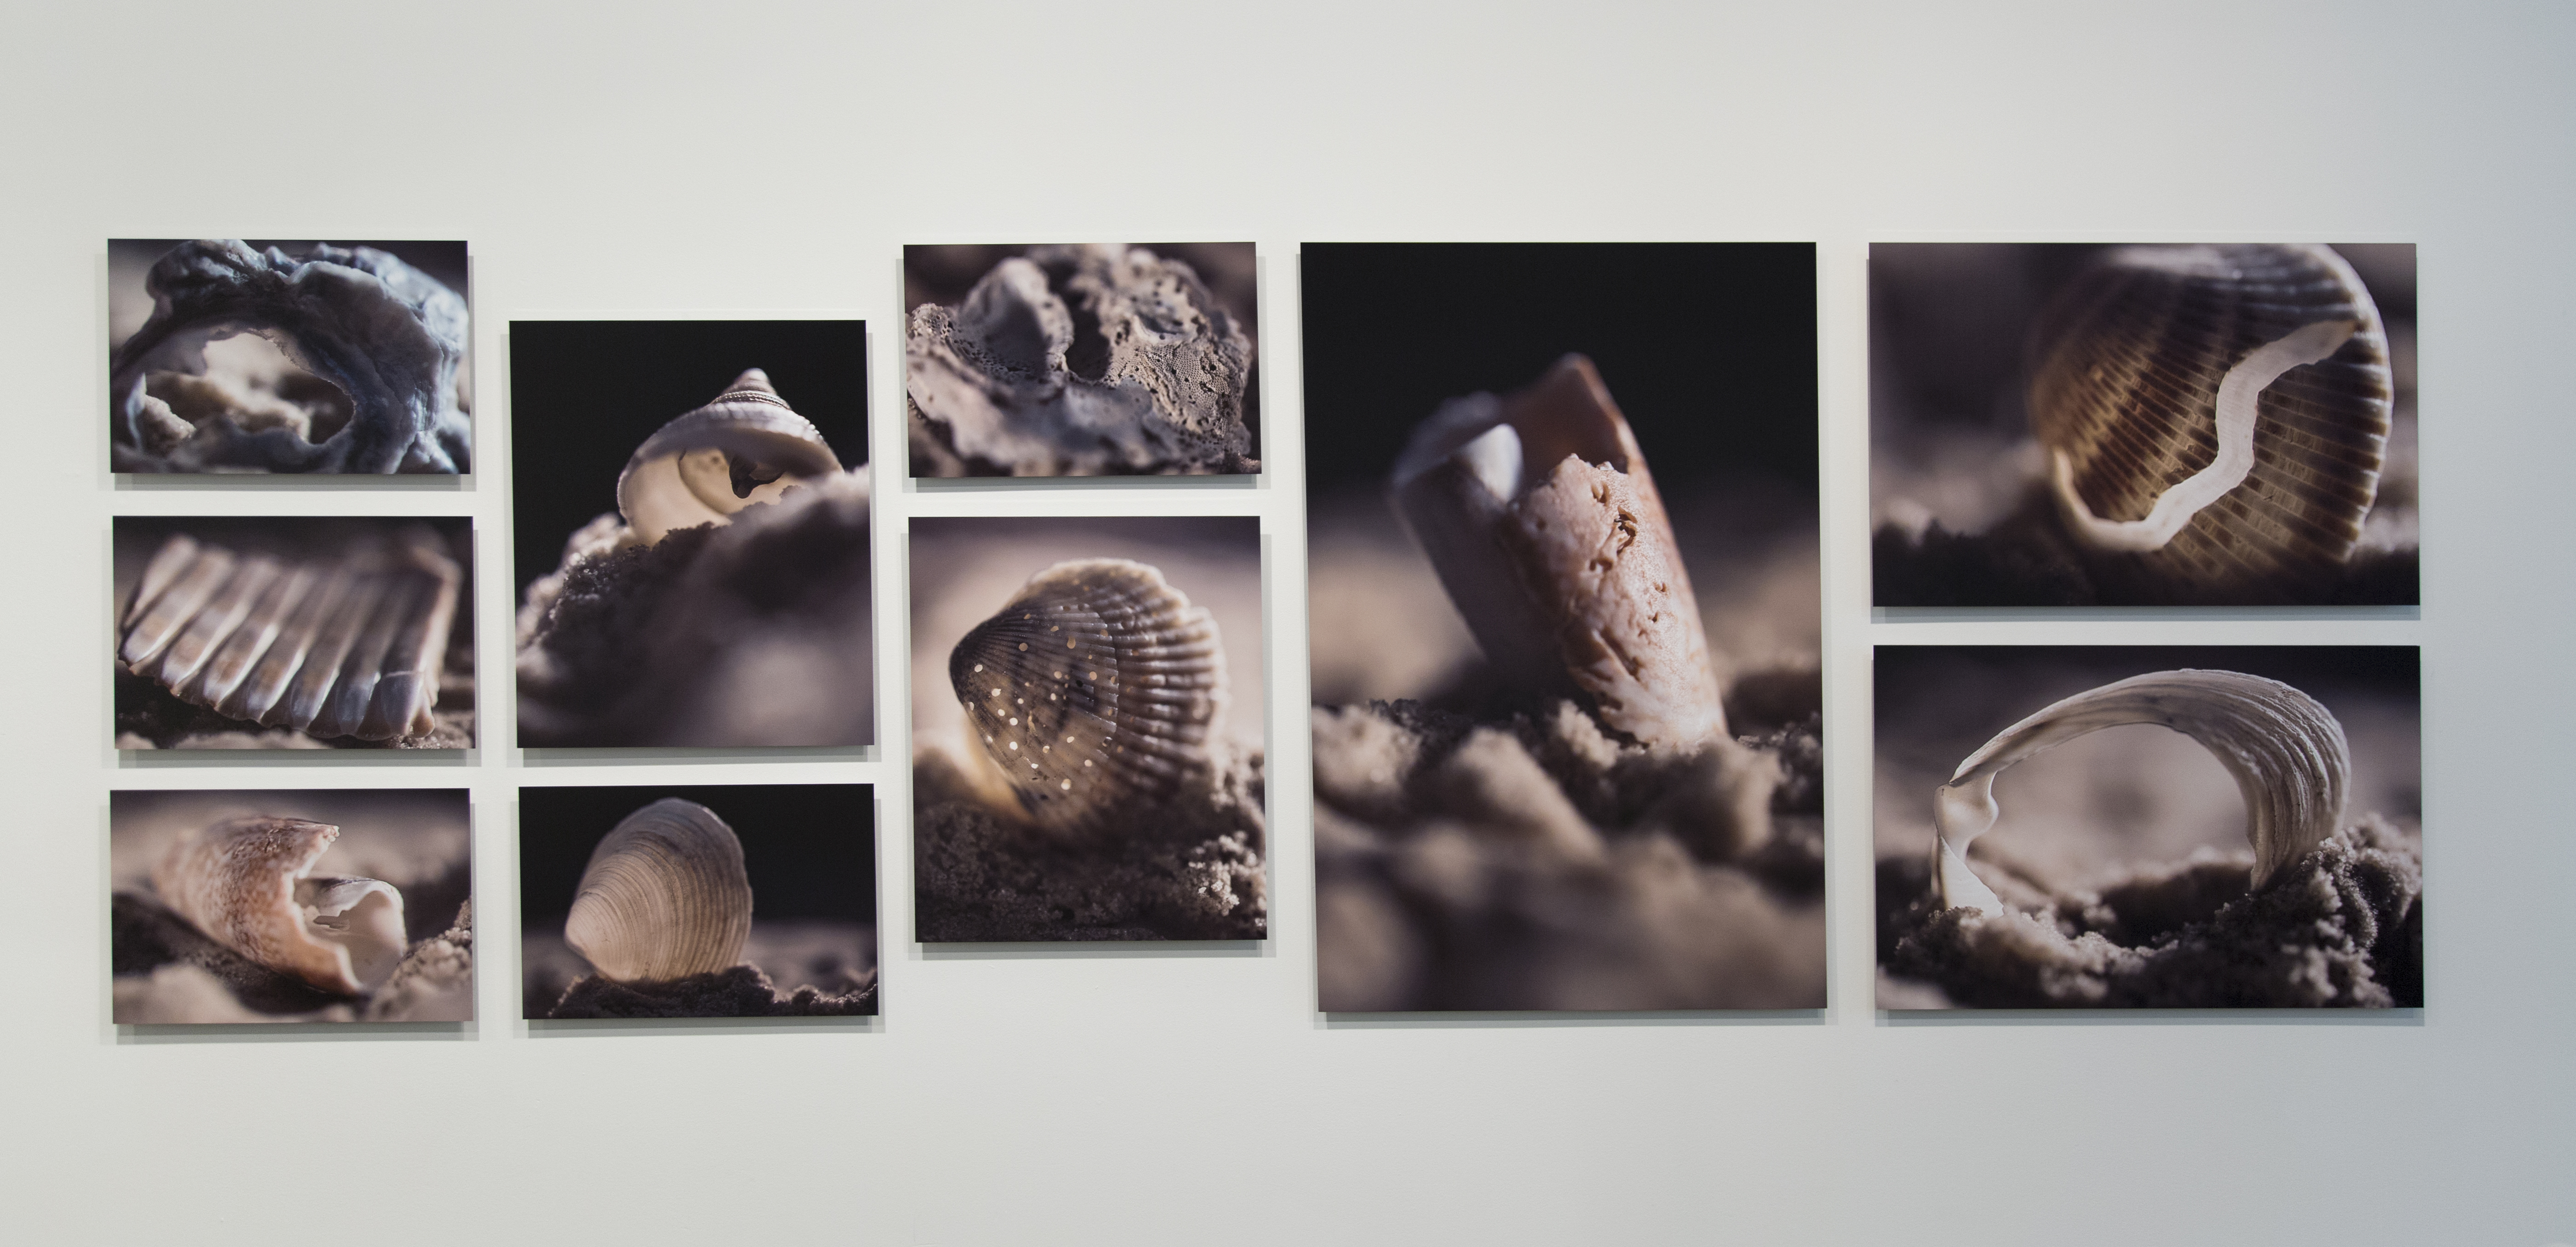 She Shells Photo Installation